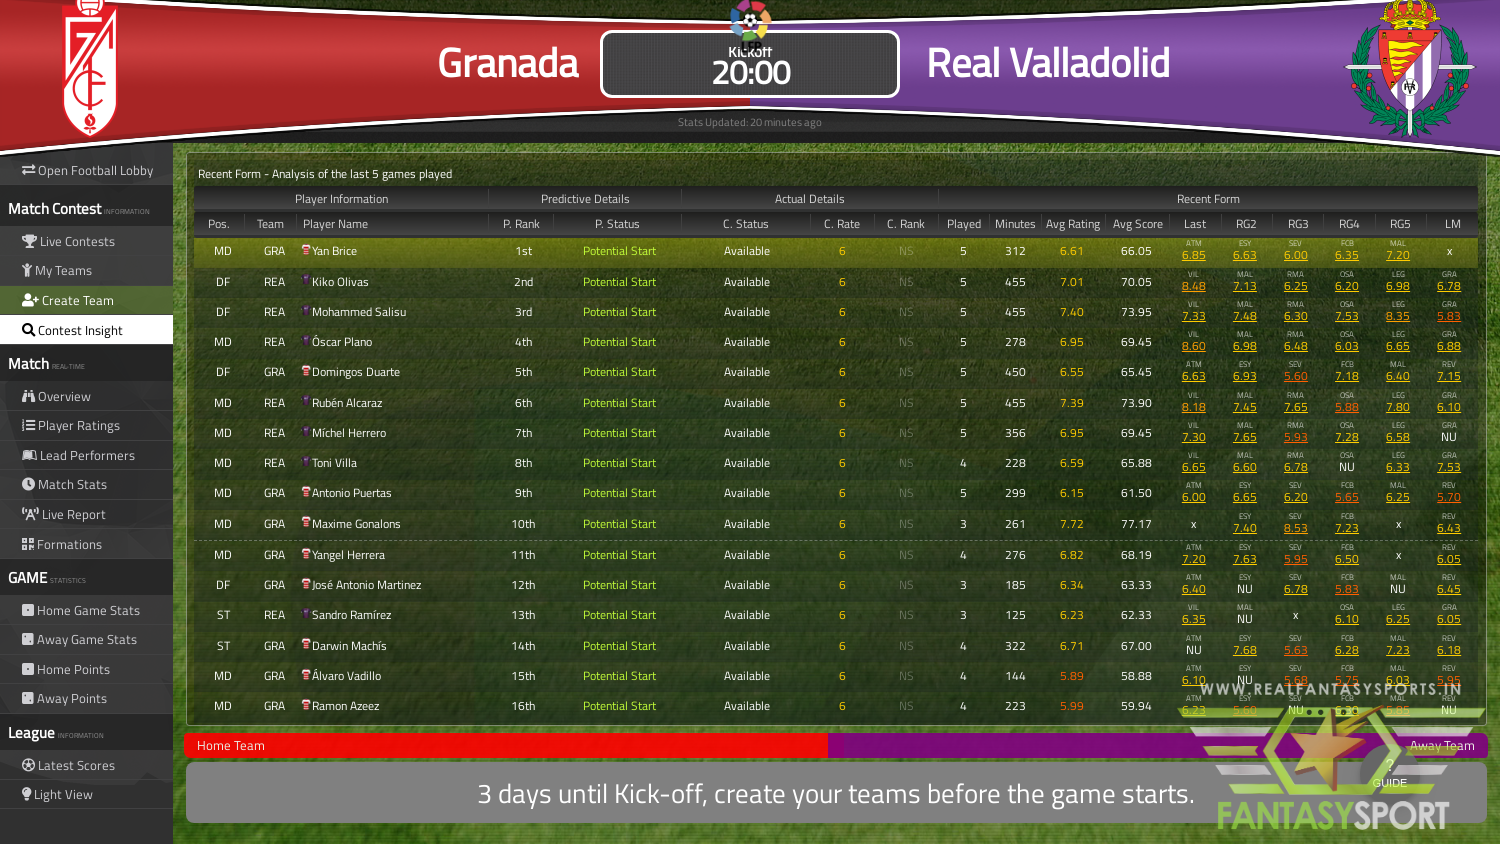 Granada Vs Real Valladolid